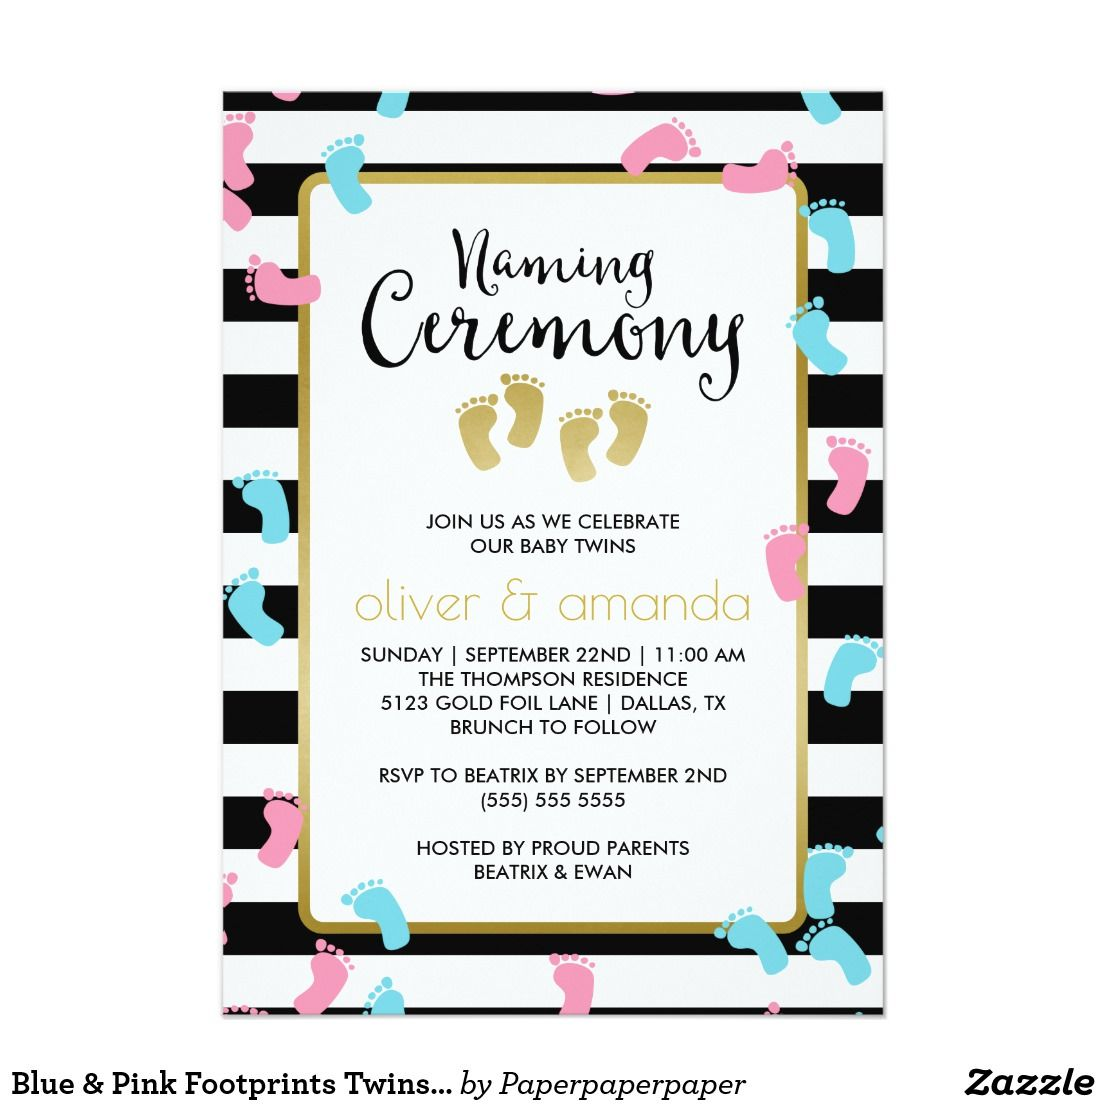 Naming ceremony invite for baby paavan karthik hi pinterest naming ceremony invite for baby paavan karthik hi pinterest naming ceremony babies and naming ceremony invitation kristyandbryce Images